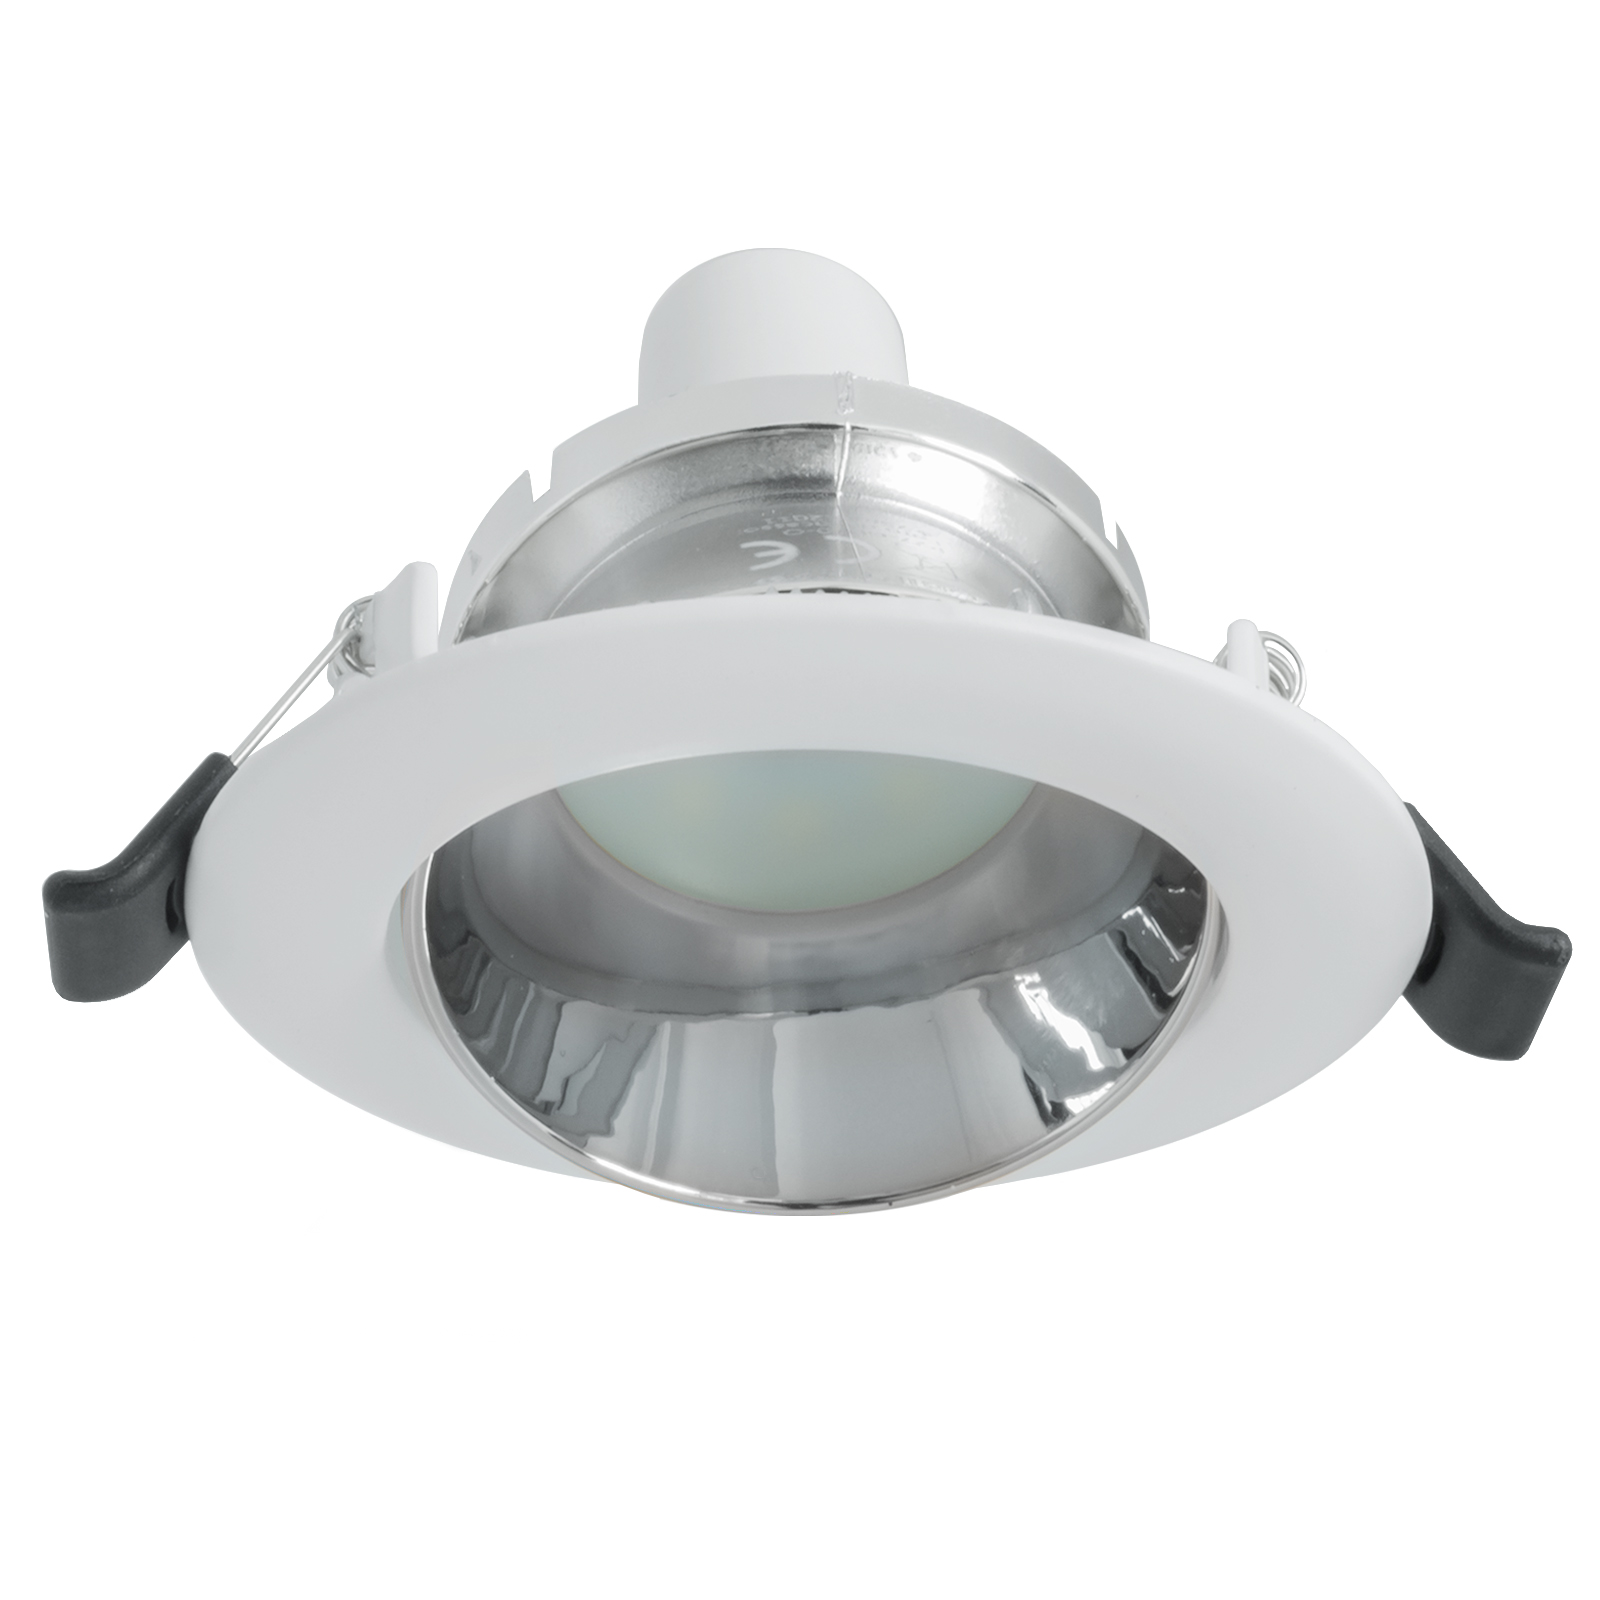 Adjustable LED spotlight 8W GU10 recessed 75mm round kitchen ceiling lights